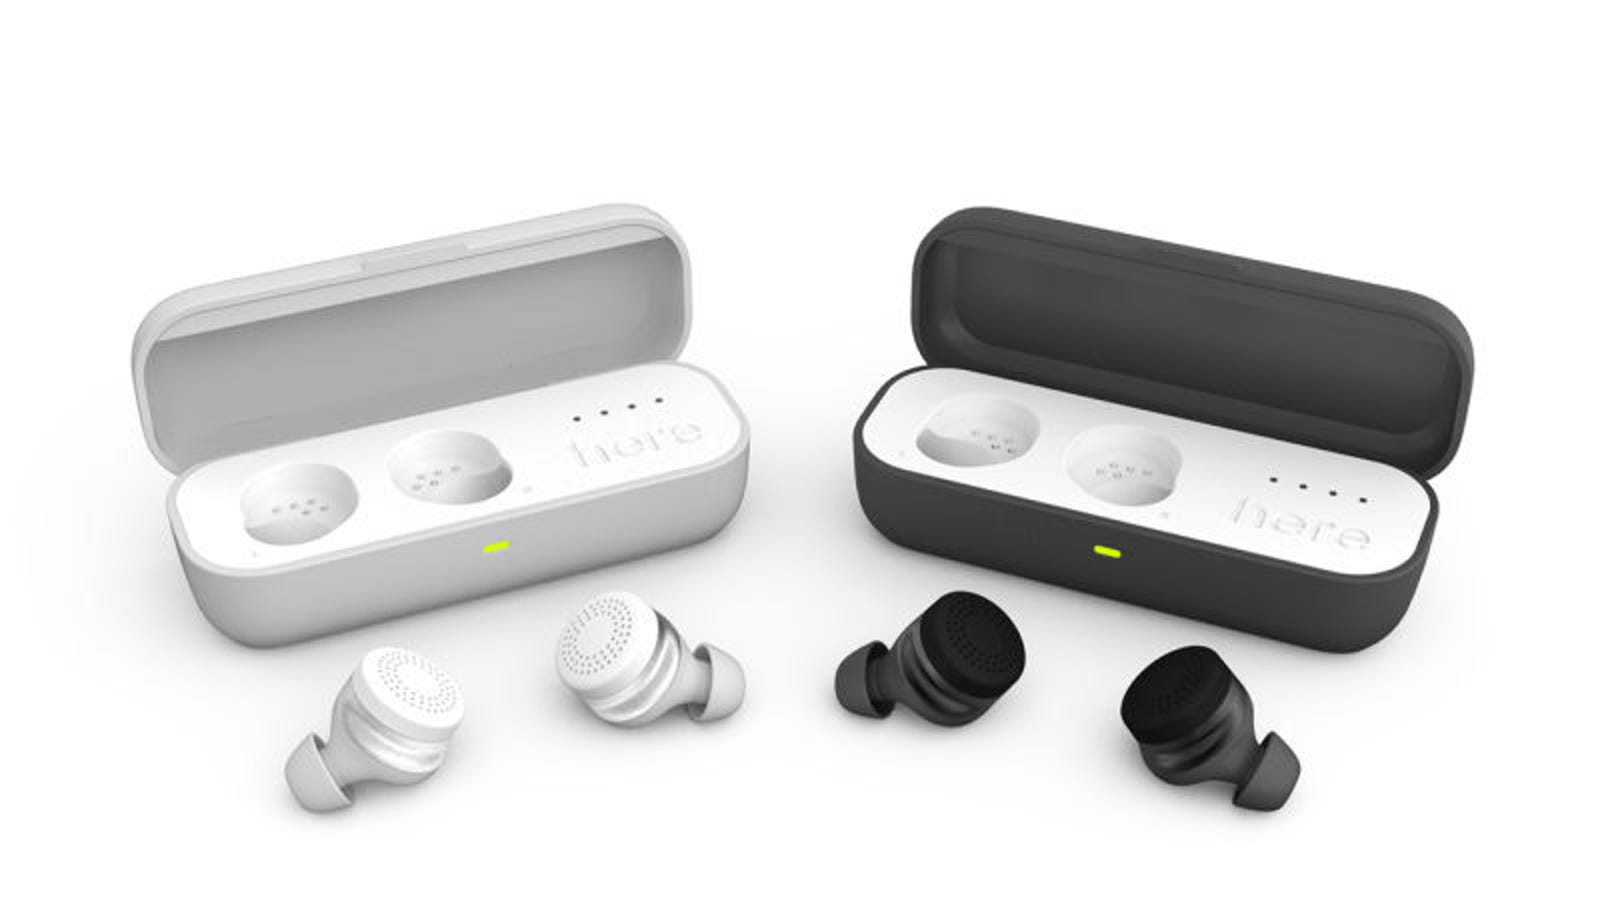 apple earbud accessories - Innovative Headphone Maker Doppler Labs Was Too Good For This World